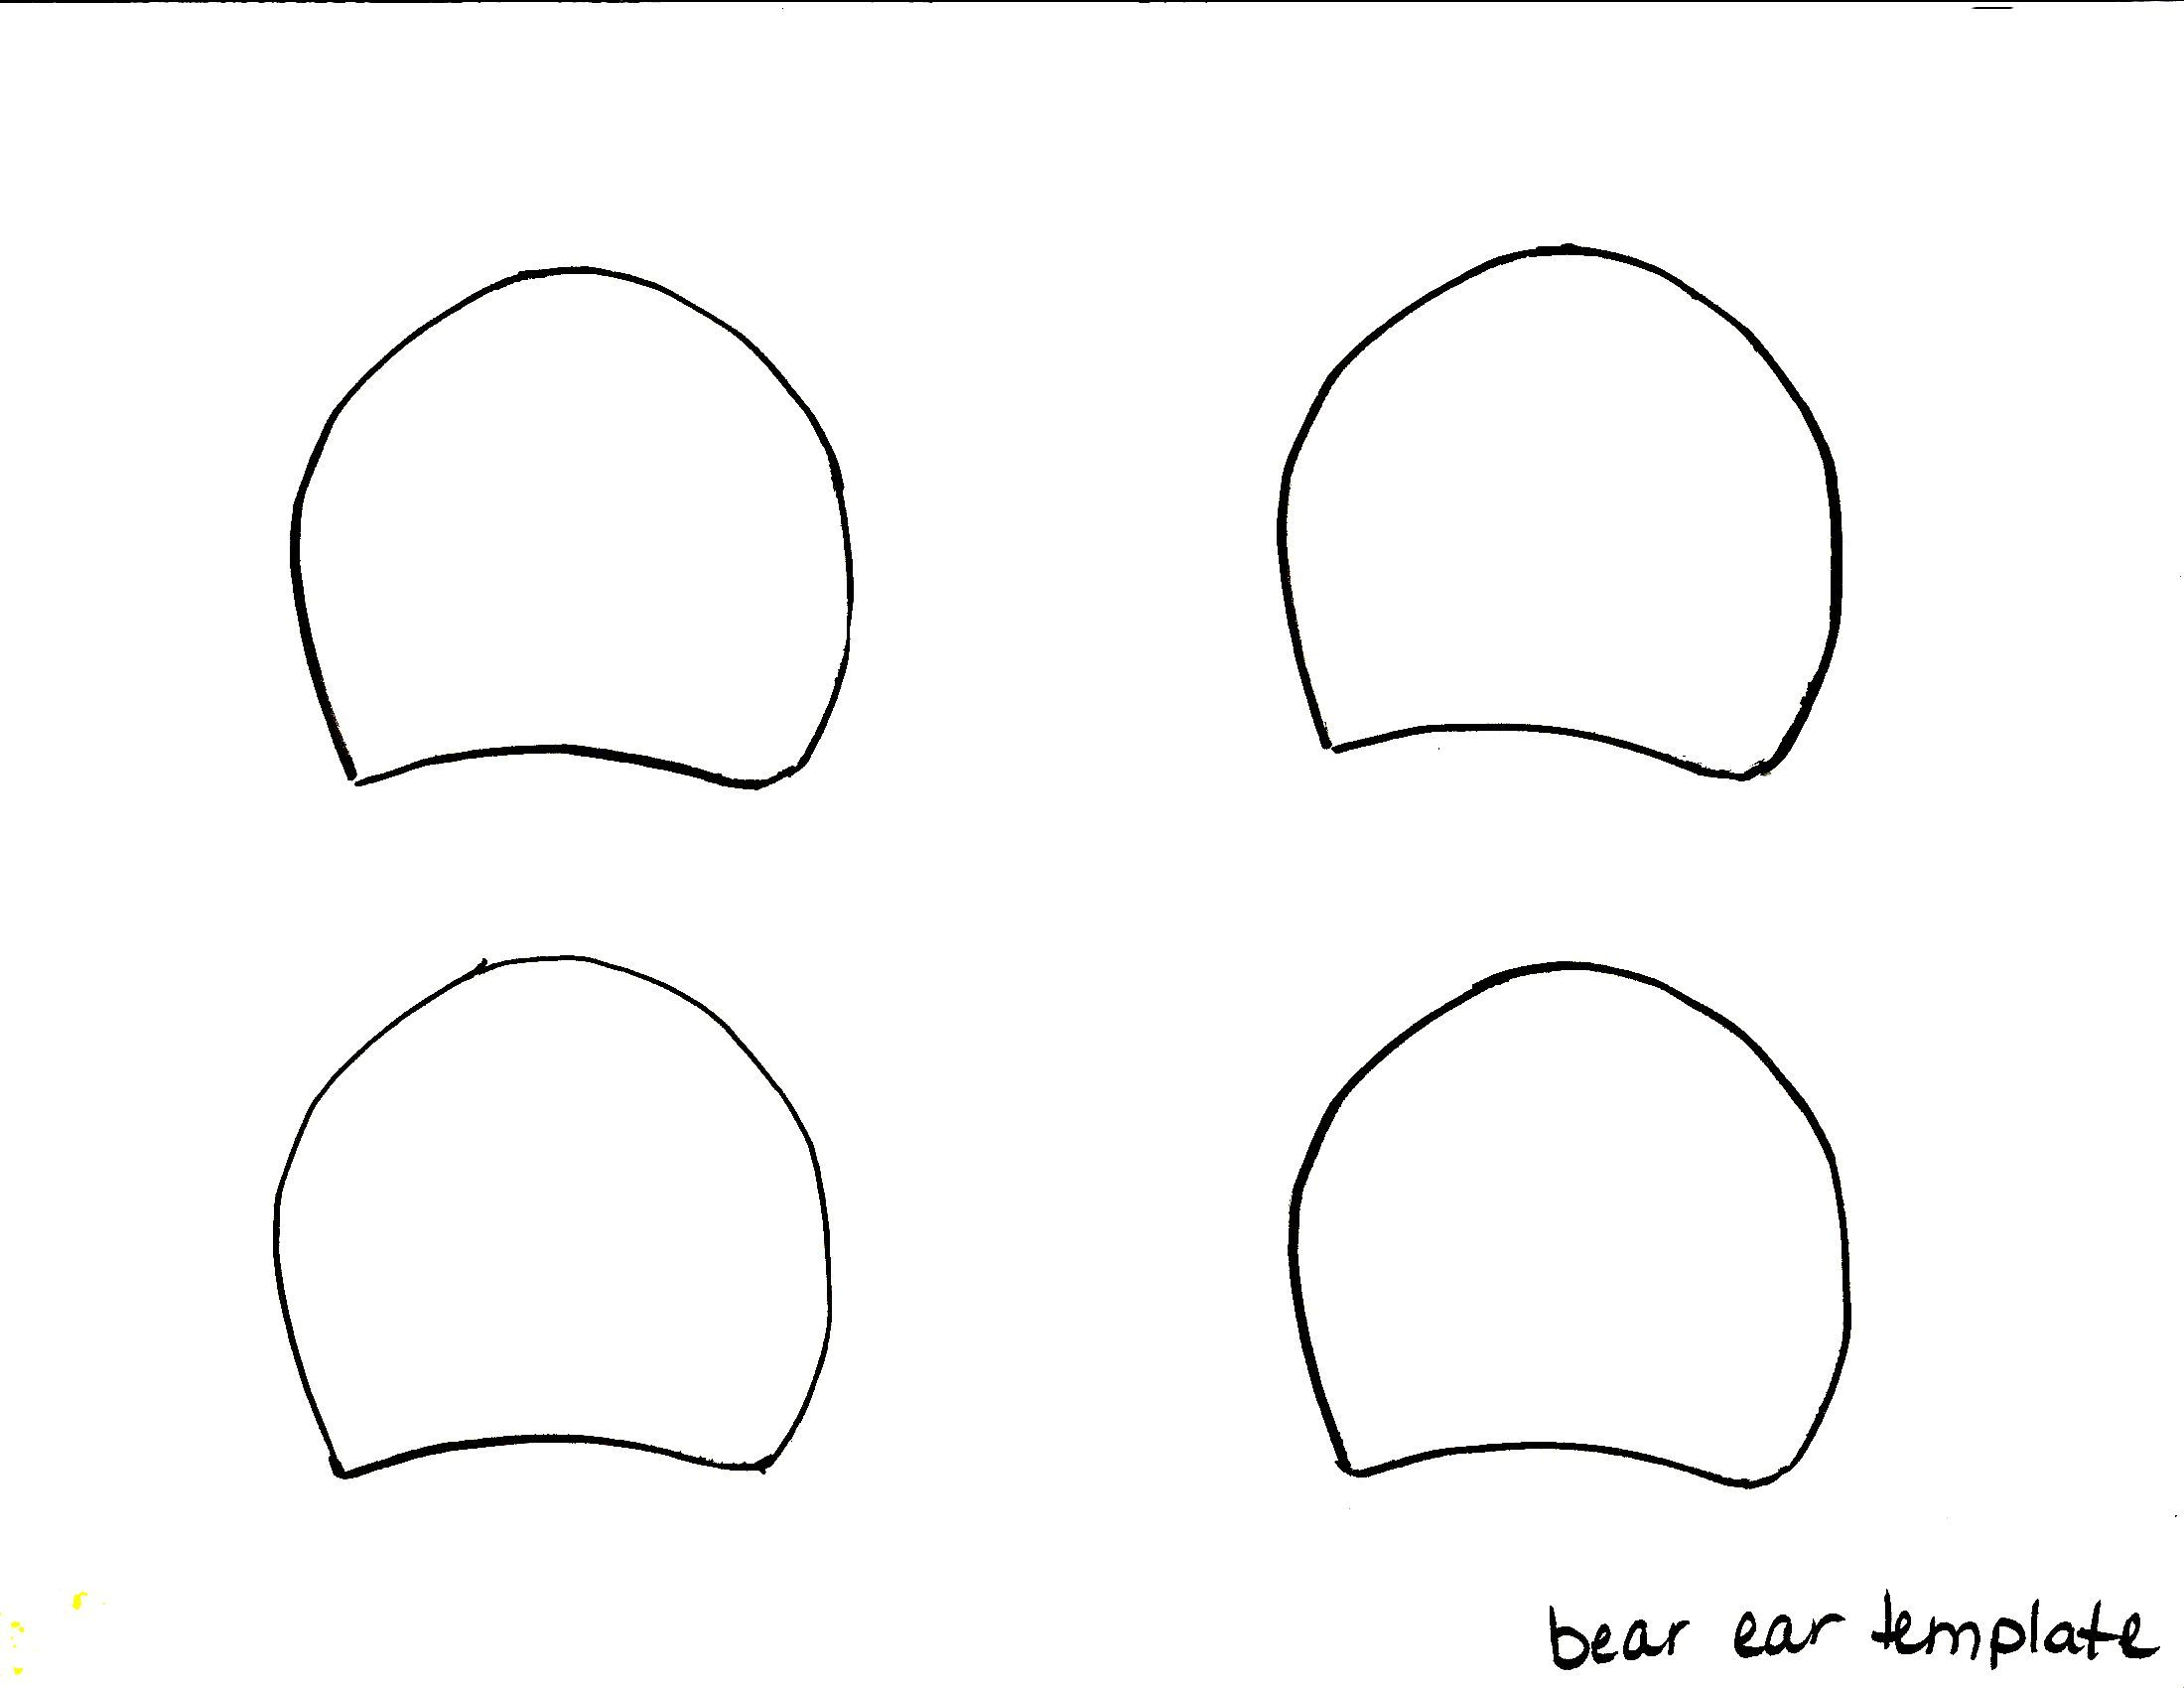 Bunny Ears Headband Template Erieairfair